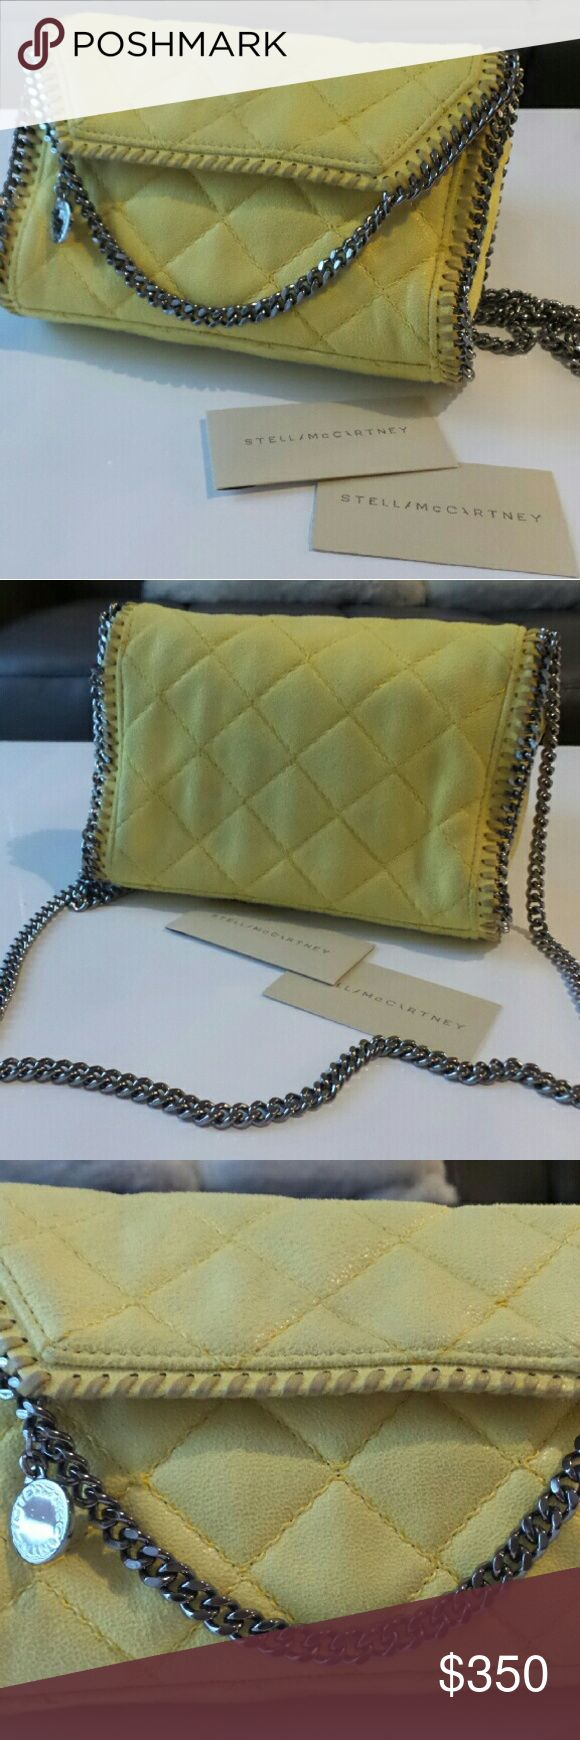 Auth Stella McCartney Falabella Mini Crossbody Bag Authentic Stella McCartney Falabella  Mini Crossbody Bag Comes with dust bag and tag Condition: used but in good condition   Please check out my other items  Feel free to ask any questions No return or exchange Stella McCartney Bags Crossbody Bags